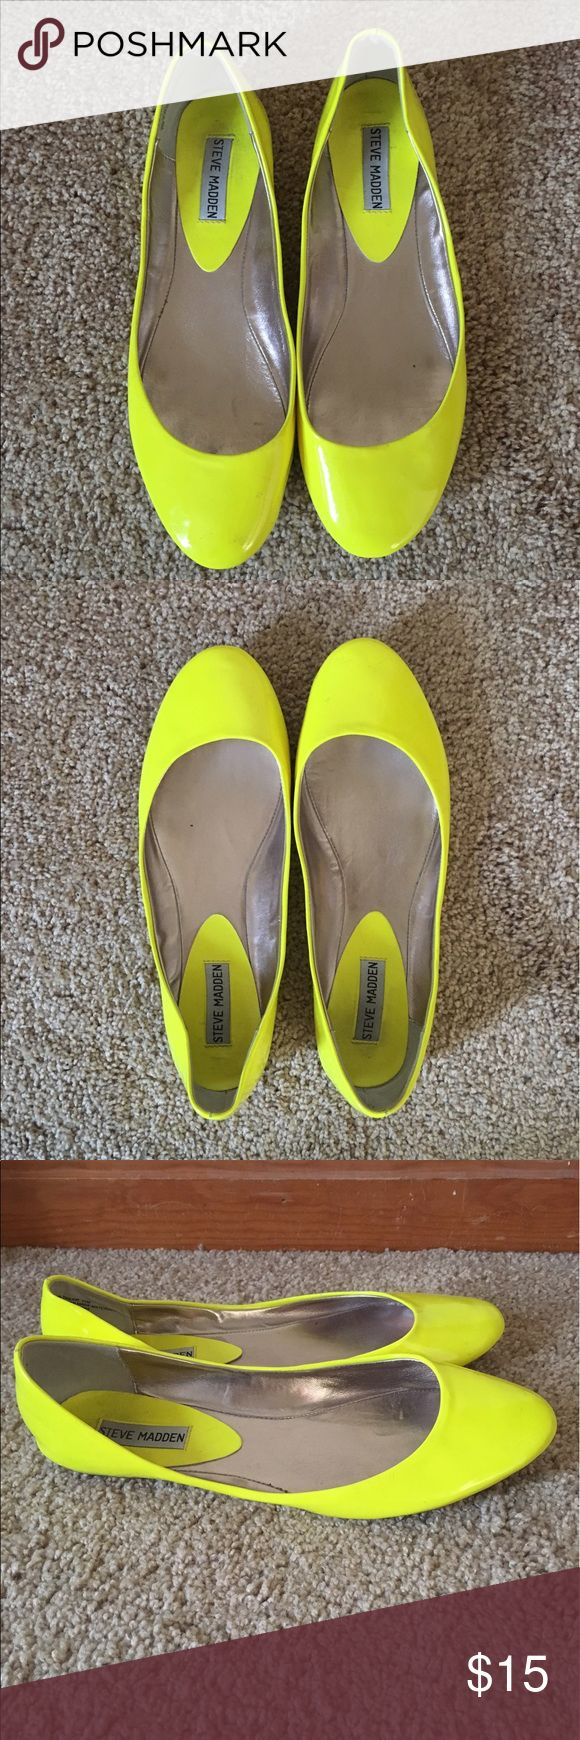 Yellow flats Neon yellow Steve Madden flats. Worn once Steve Madden Shoes Flats & Loafers